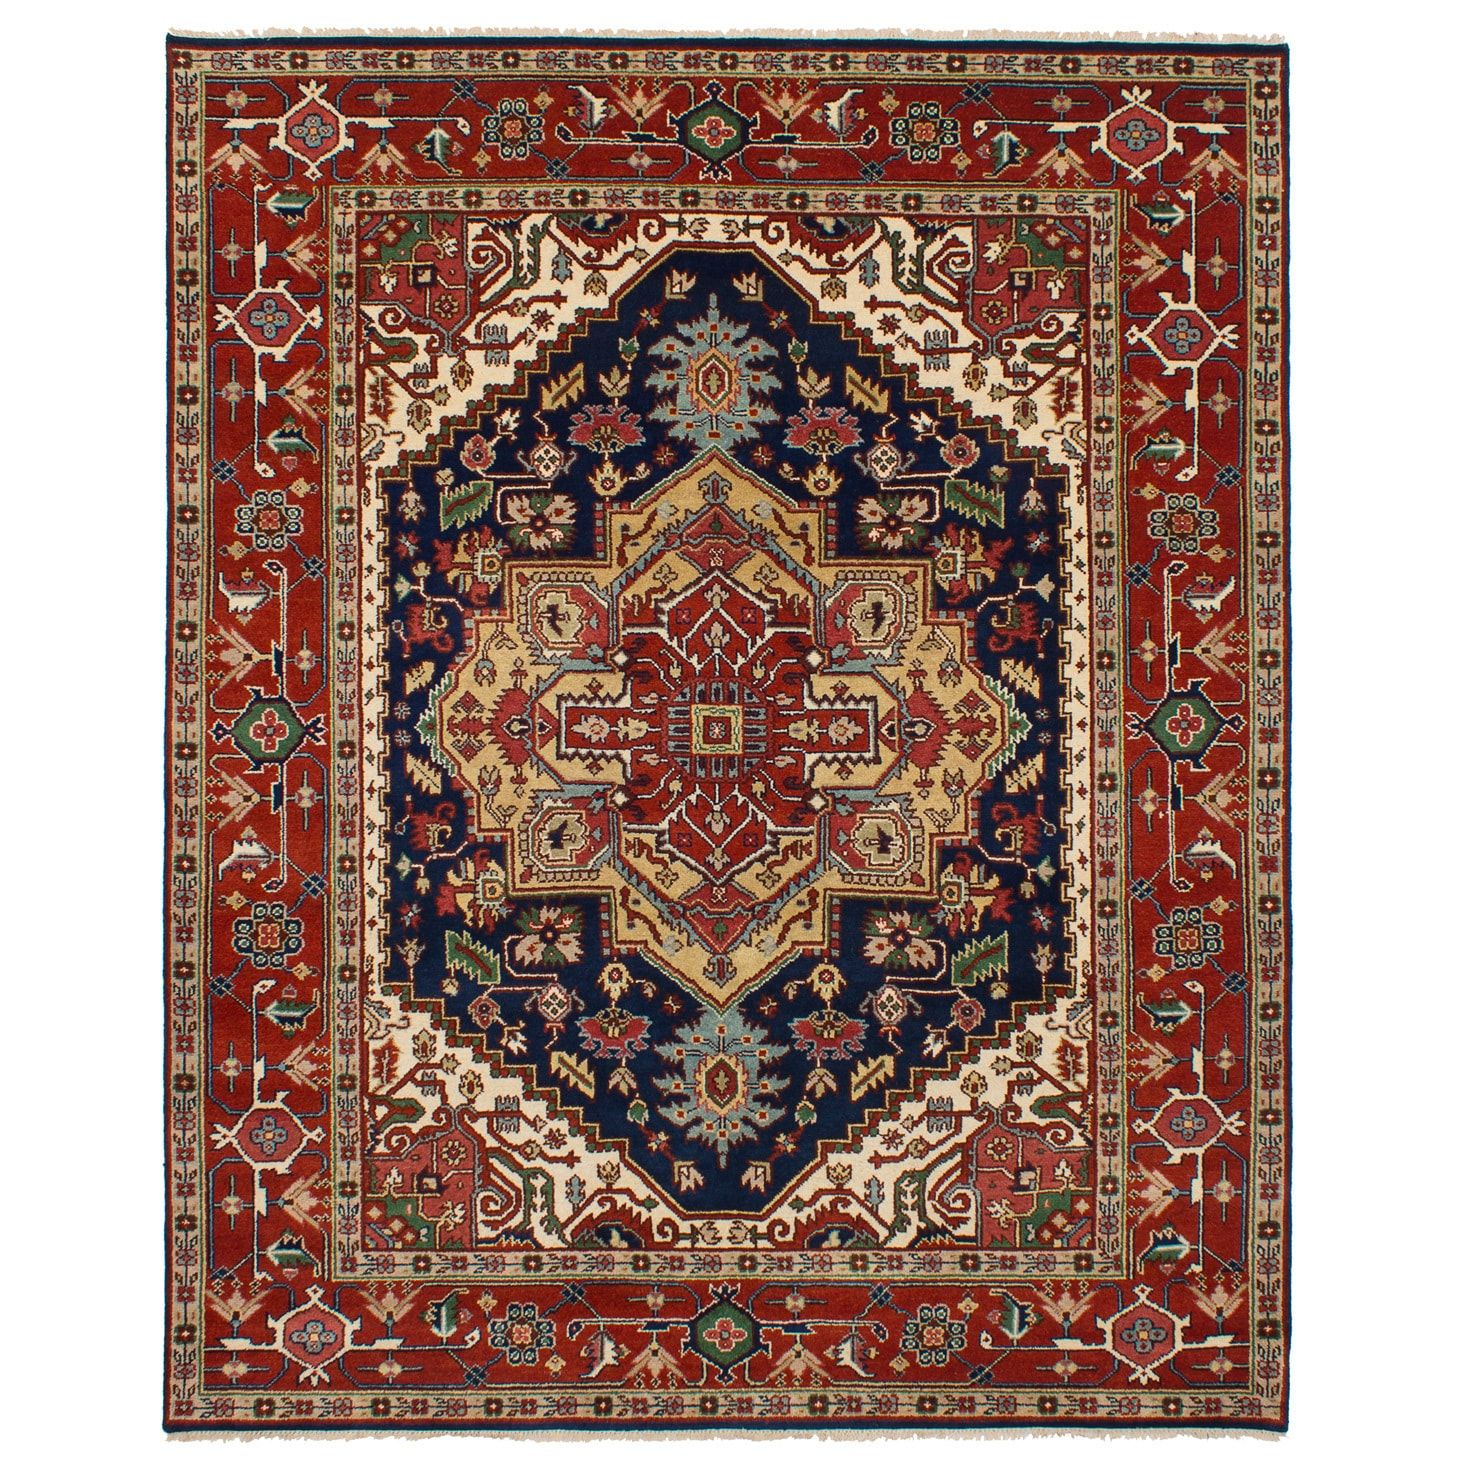 Ecarpetgallery Hand Knotted Serapi Heritage Blue Red Wool Rug 8 1 X 10 2 Rugs Area Rugs Red Rugs